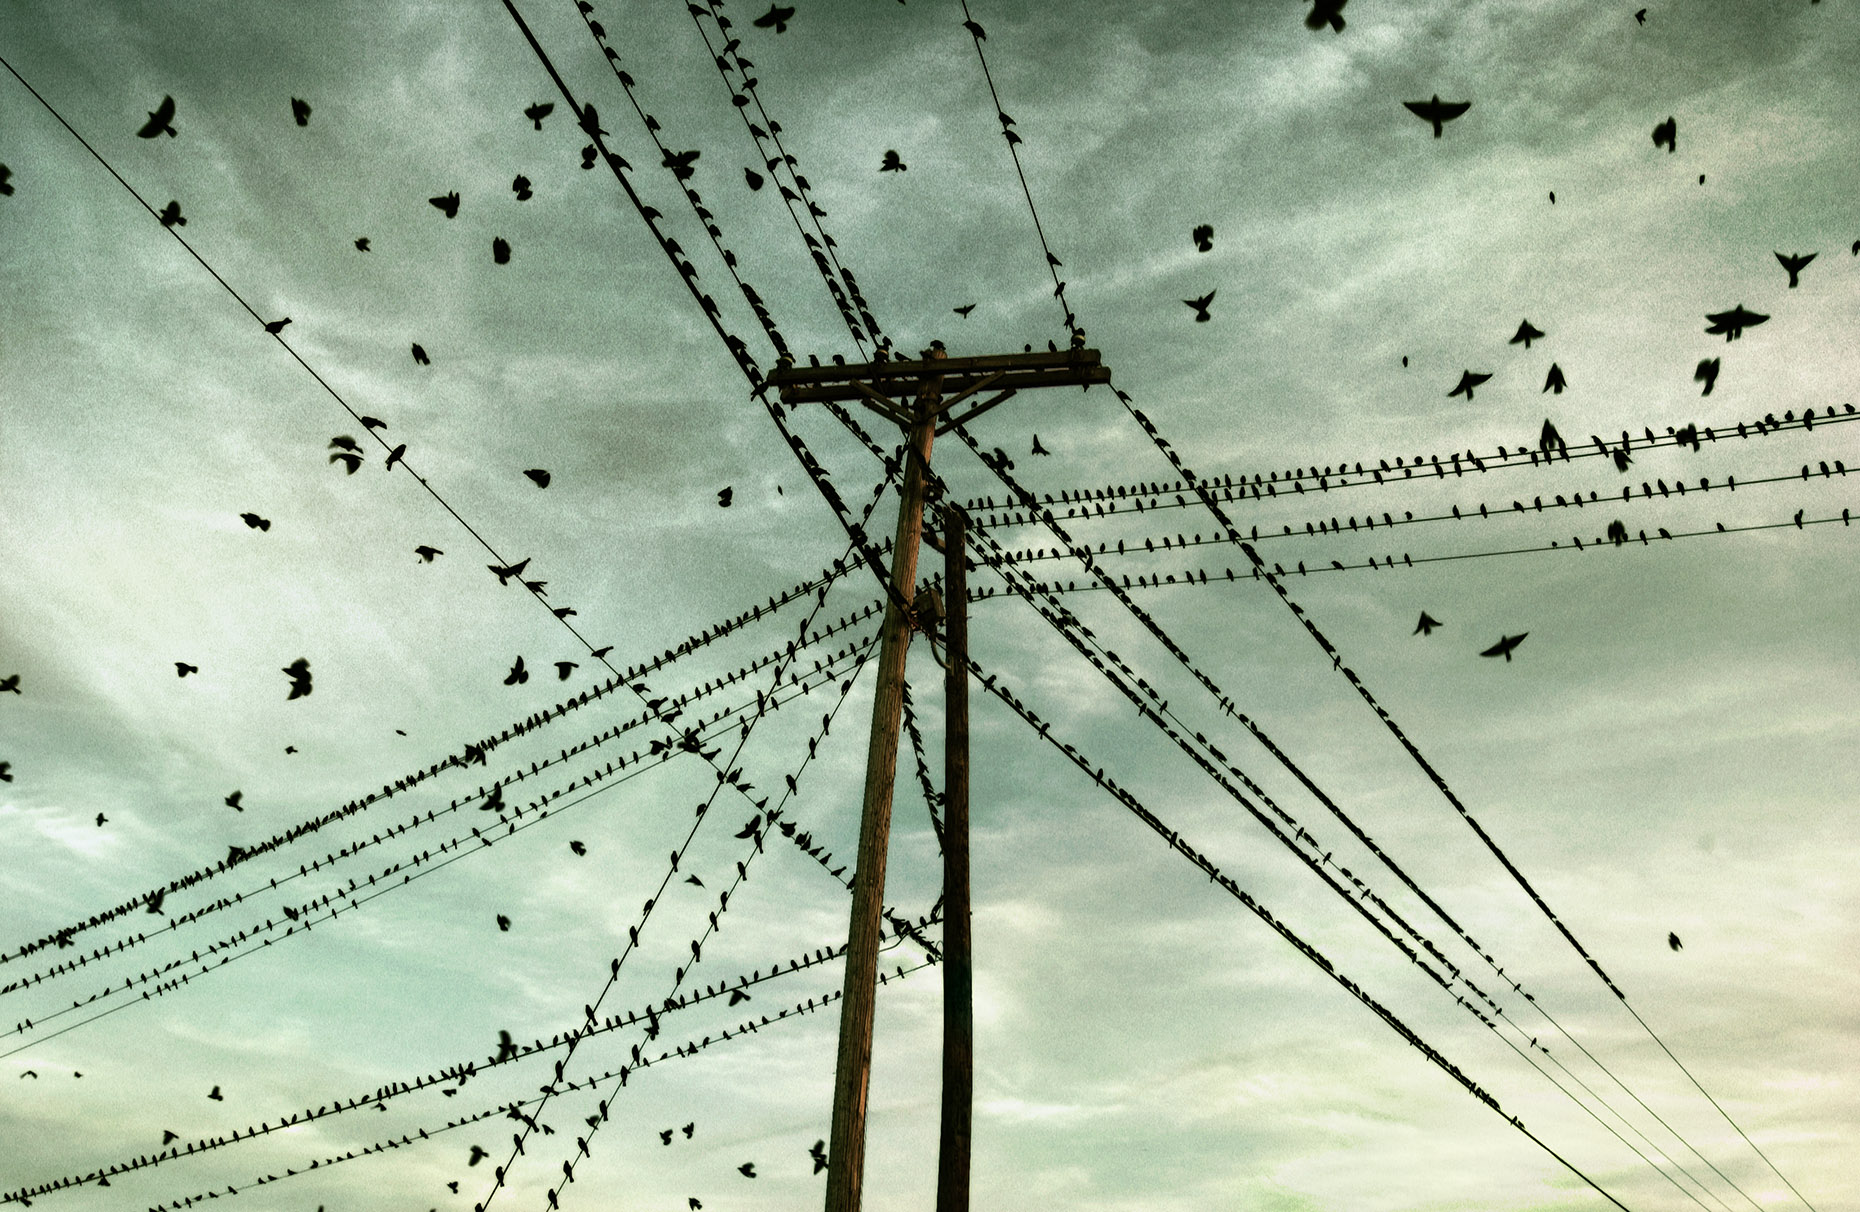 birdsonpowerlines1860